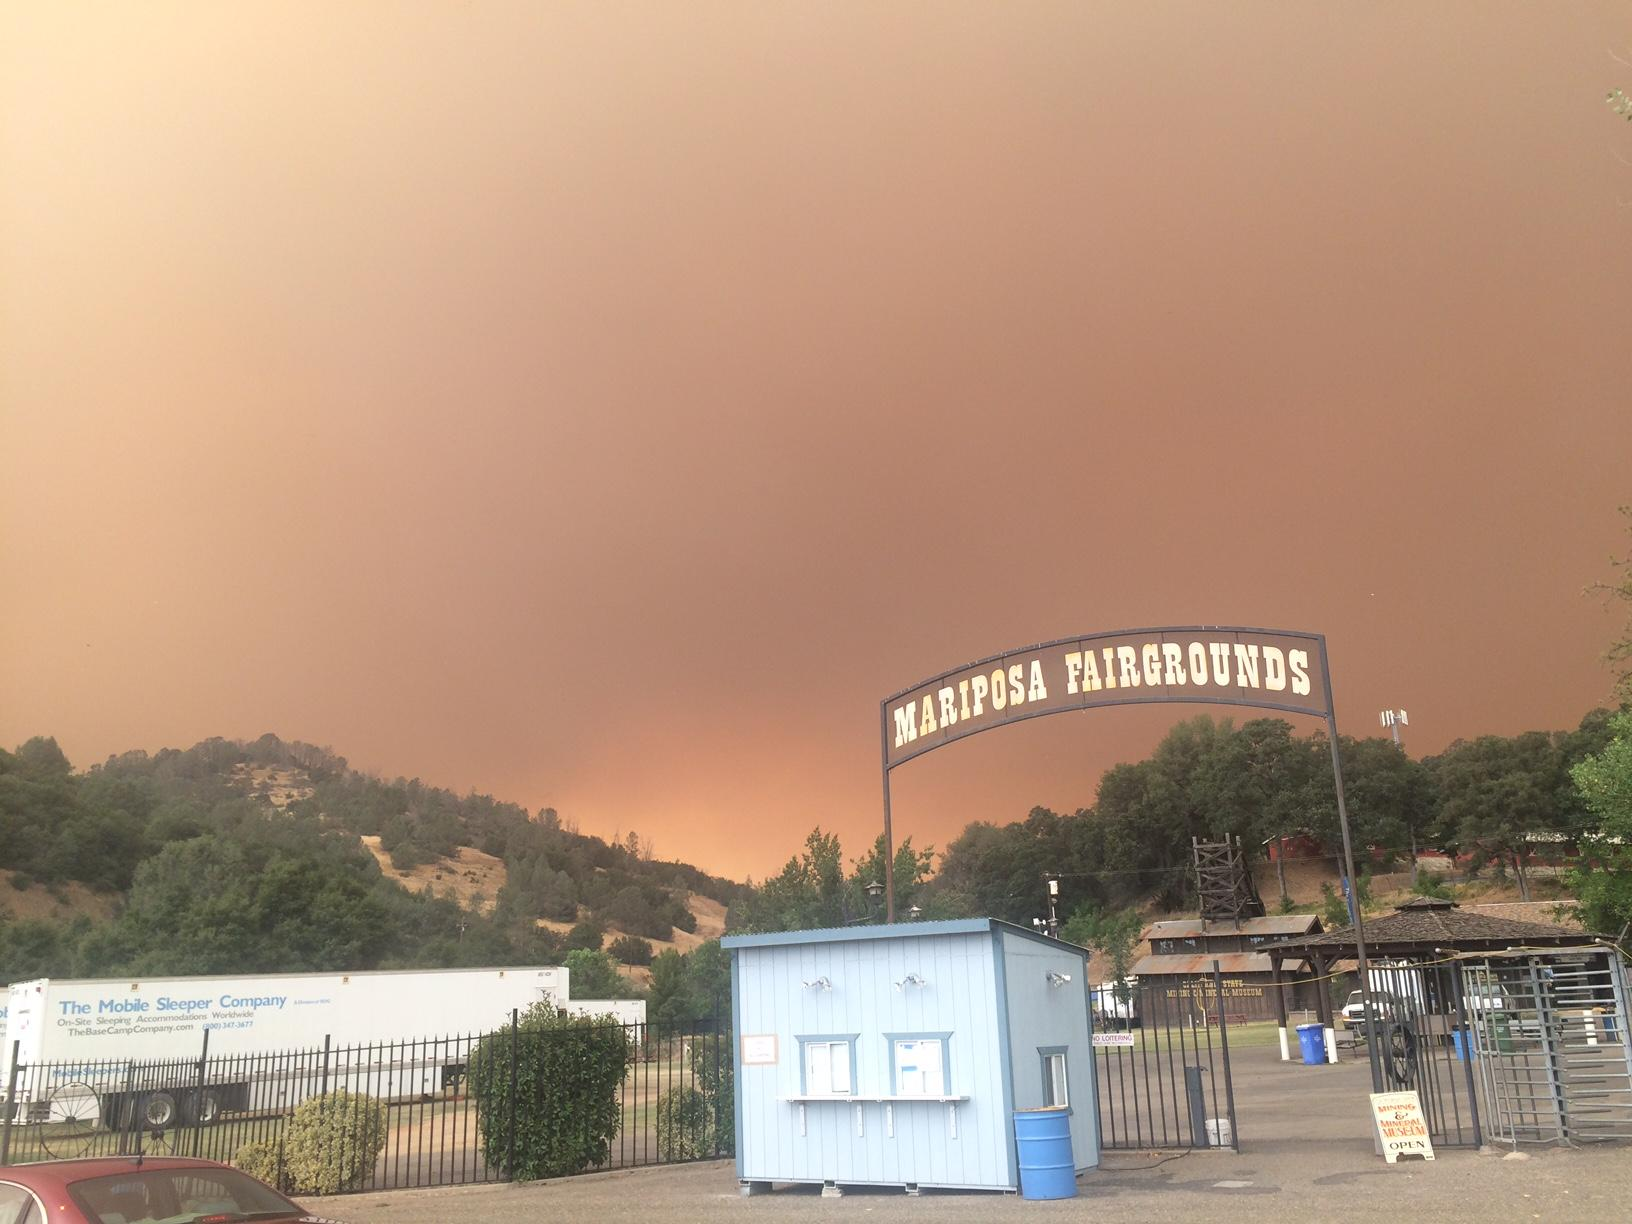 Governor declares state of emergency in Mariposa fire